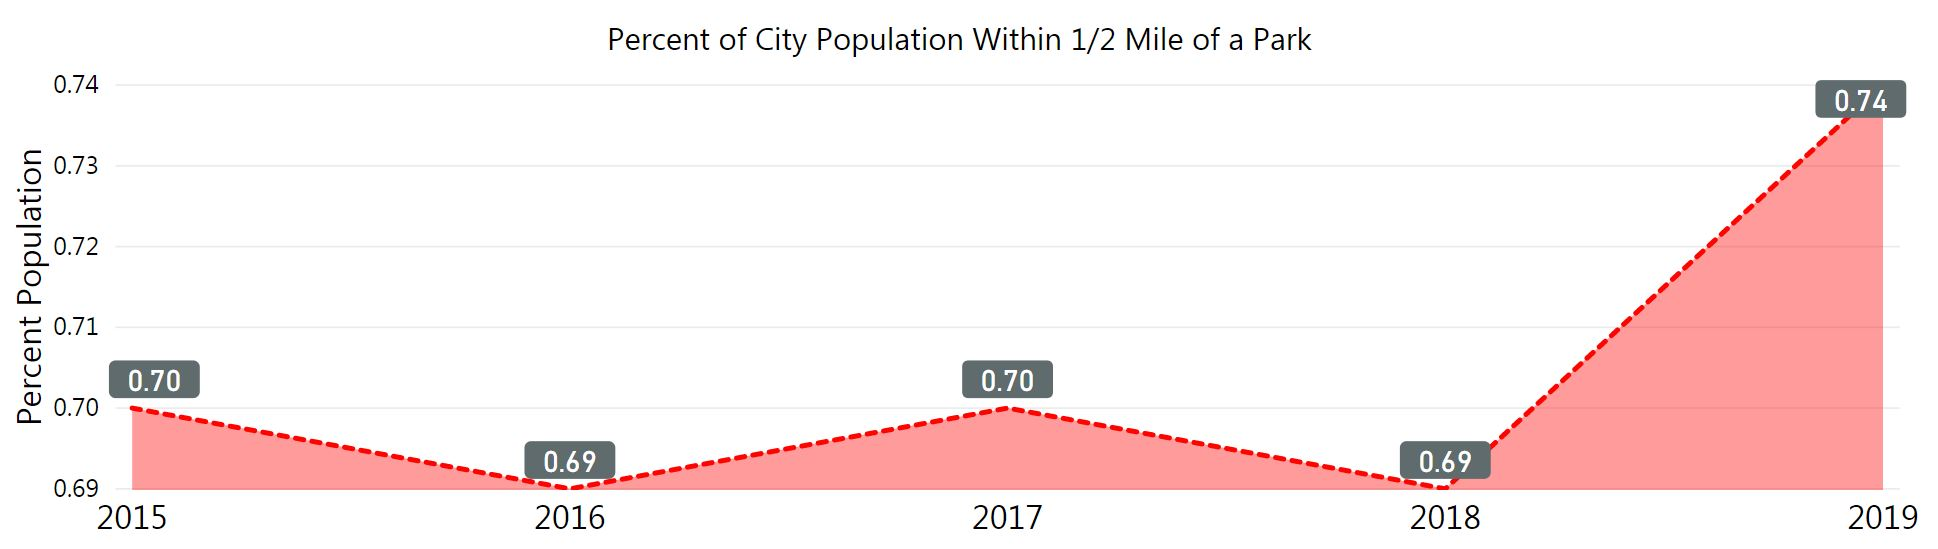 graph of percent of city population within 1/2 mile of a park. low points in 2016 and 2018 at 0.69. High point 2019 at 0.74